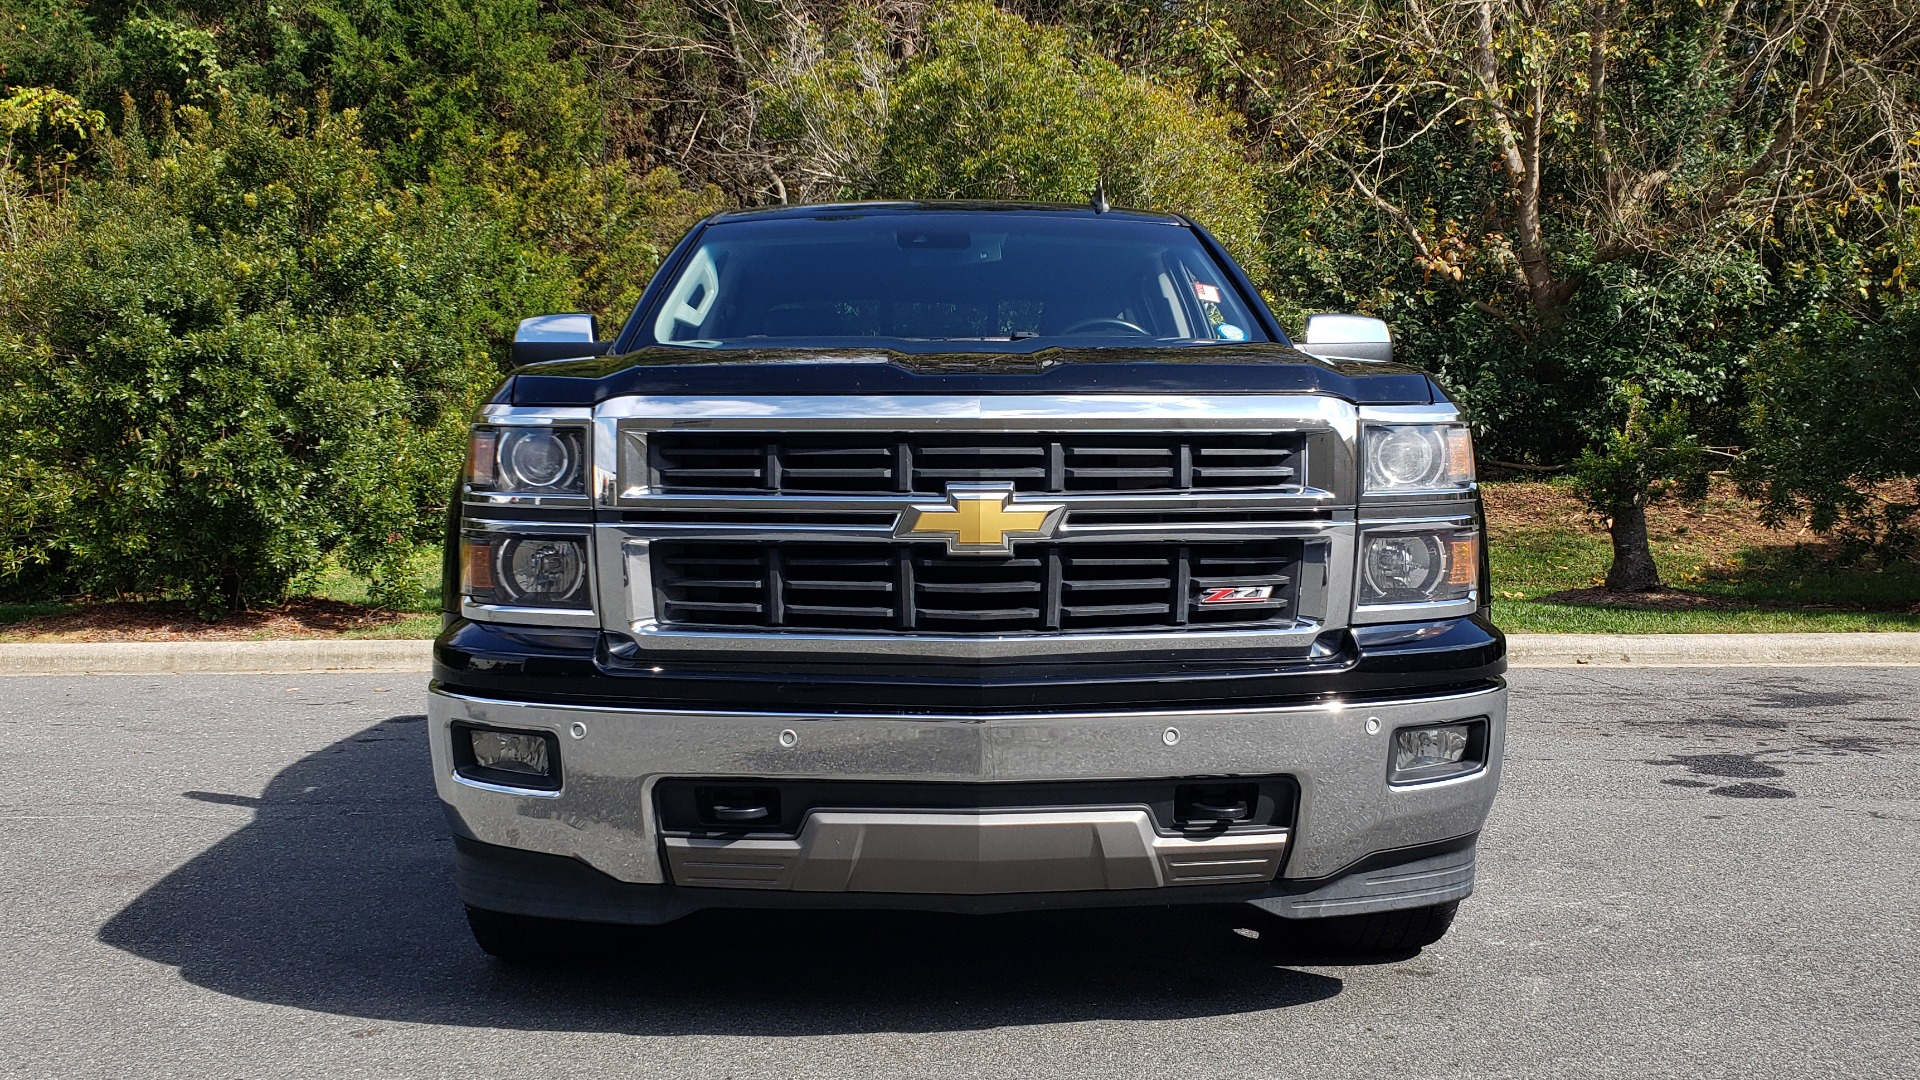 Used 2014 Chevrolet SILVERADO 1500 CREWCAB / LTZ PLUS PKG / 4WD / 2LZ / NAV / BOSE / REARVIEW for sale Sold at Formula Imports in Charlotte NC 28227 15